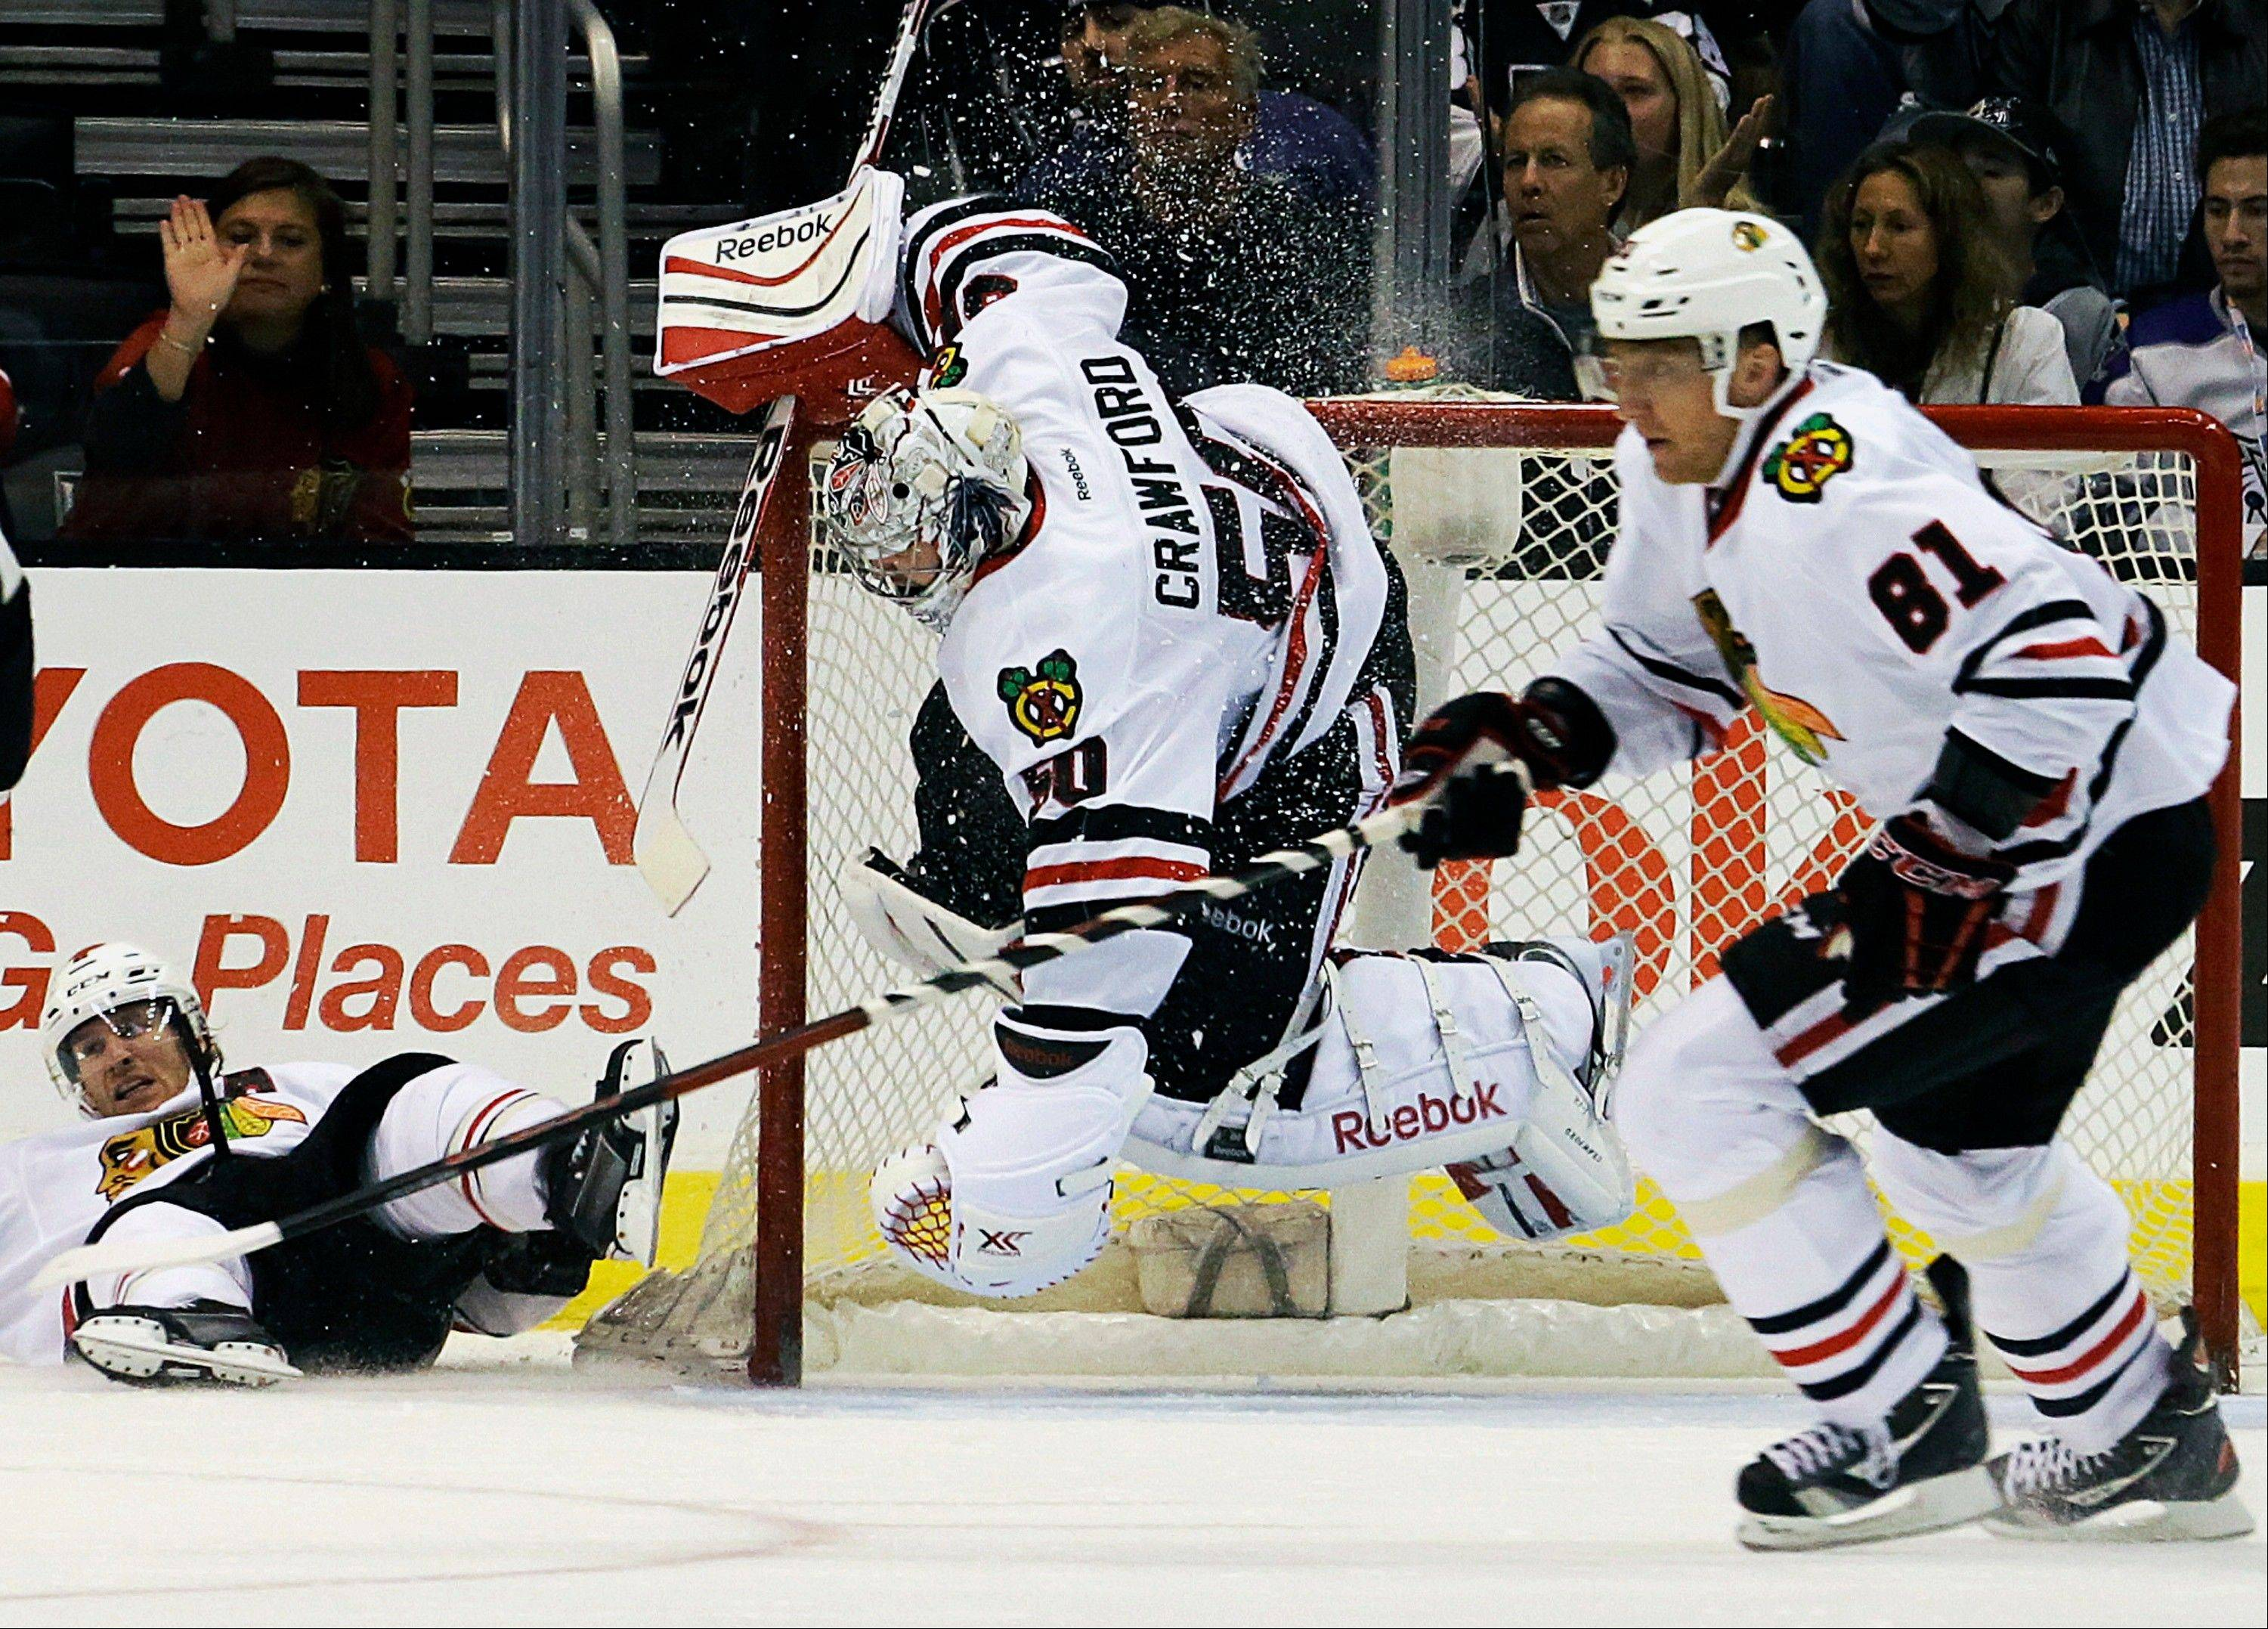 Blackhawks goalie Corey Crawford goes airborne as he and right winger Marian Hossa block the goal against the Kings in the third period of Monday night's 5-3 Hawks victory.